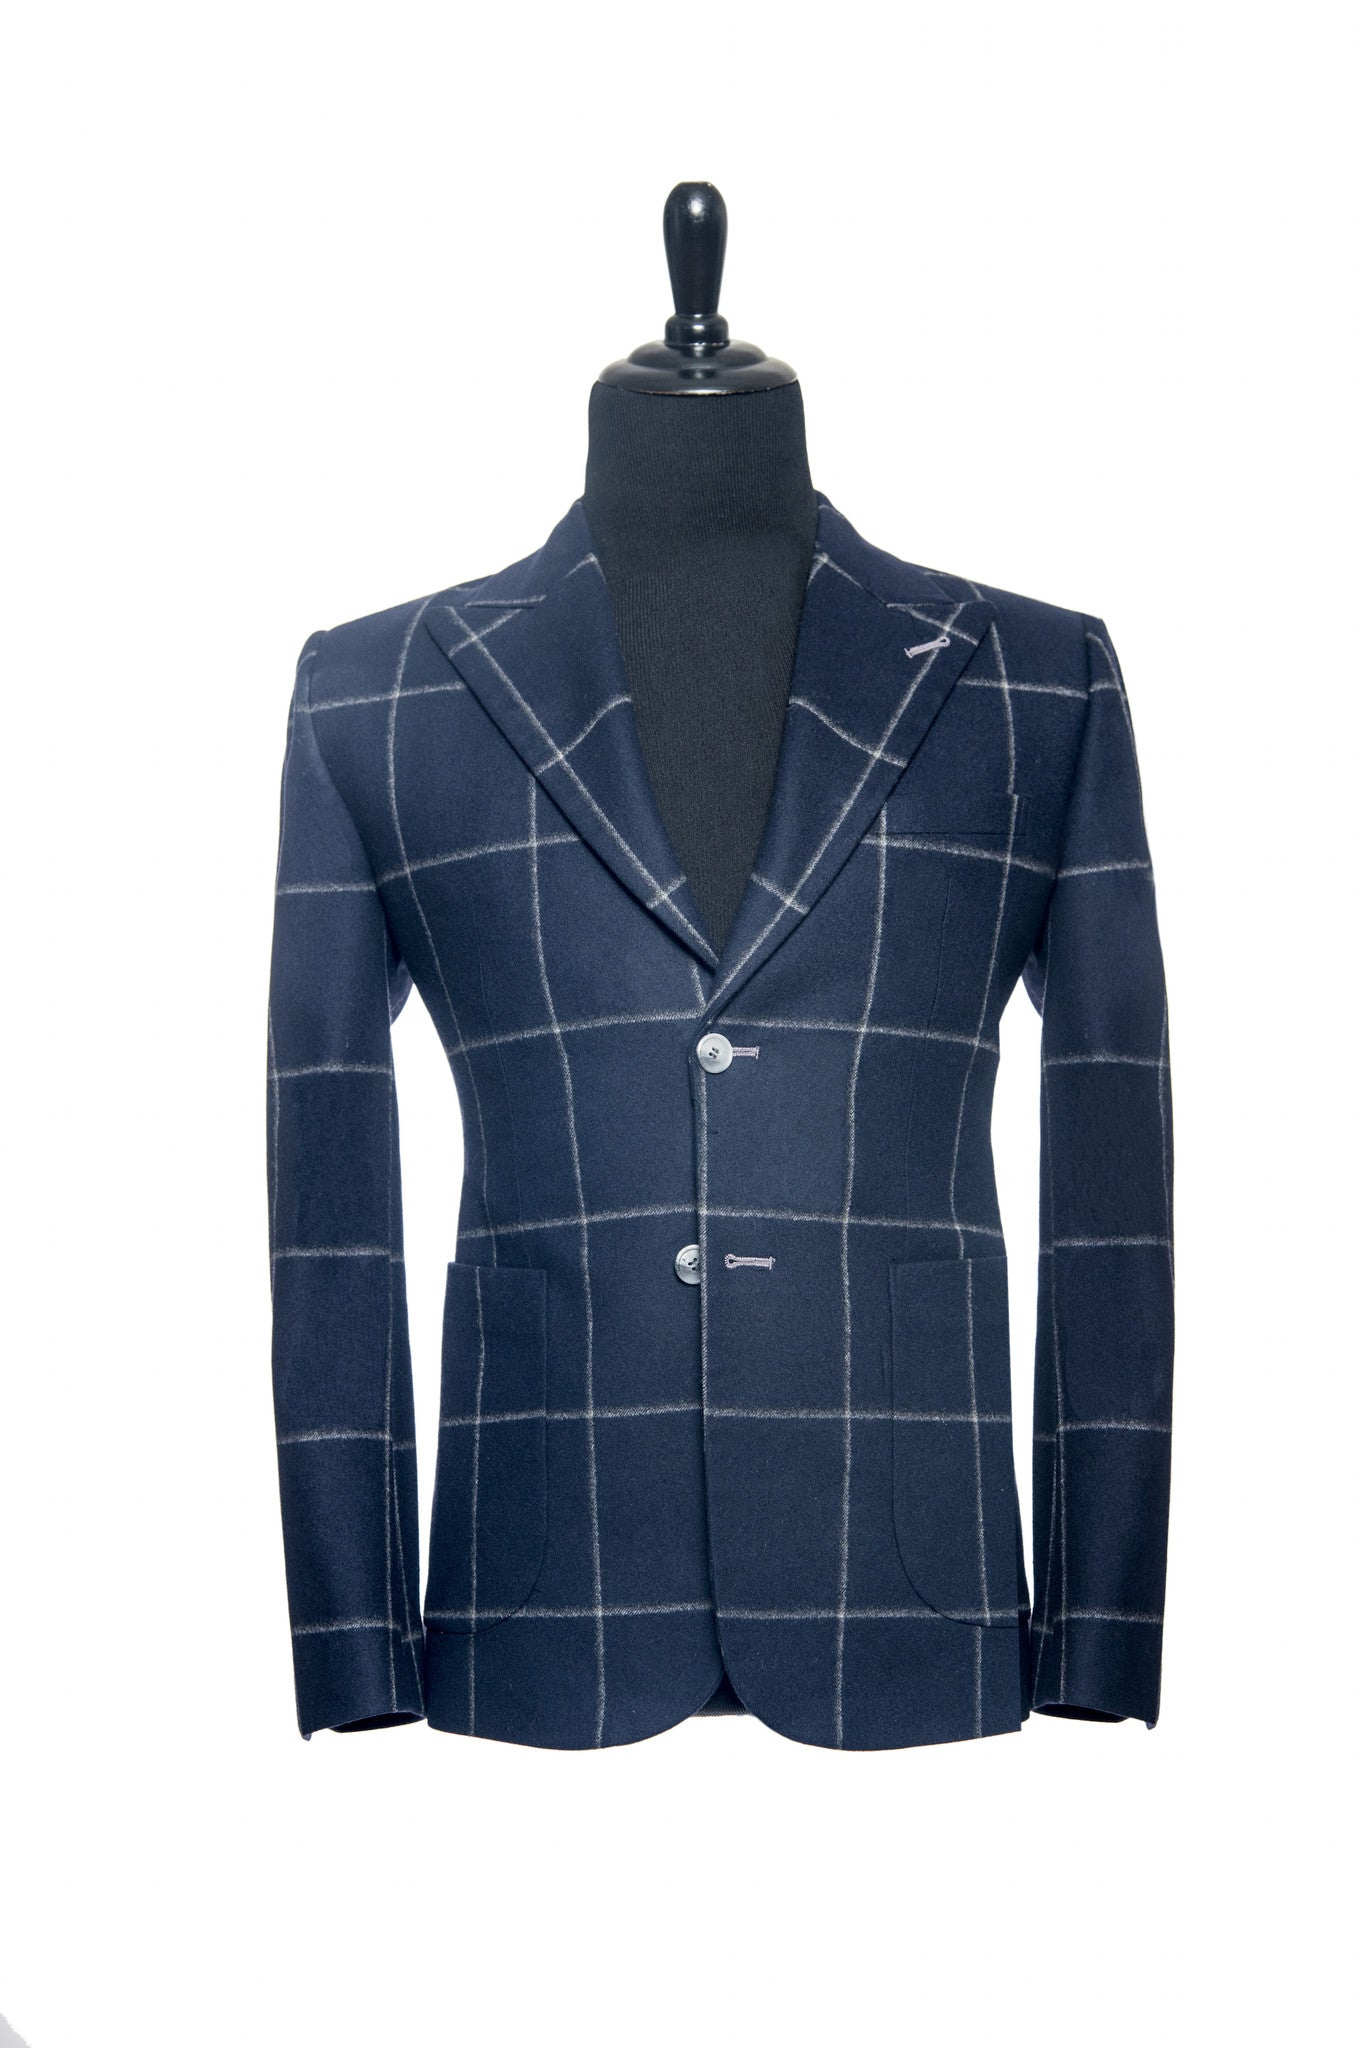 Fox Brothers: Navy Blue and Grey Windowpane Custom Blazer